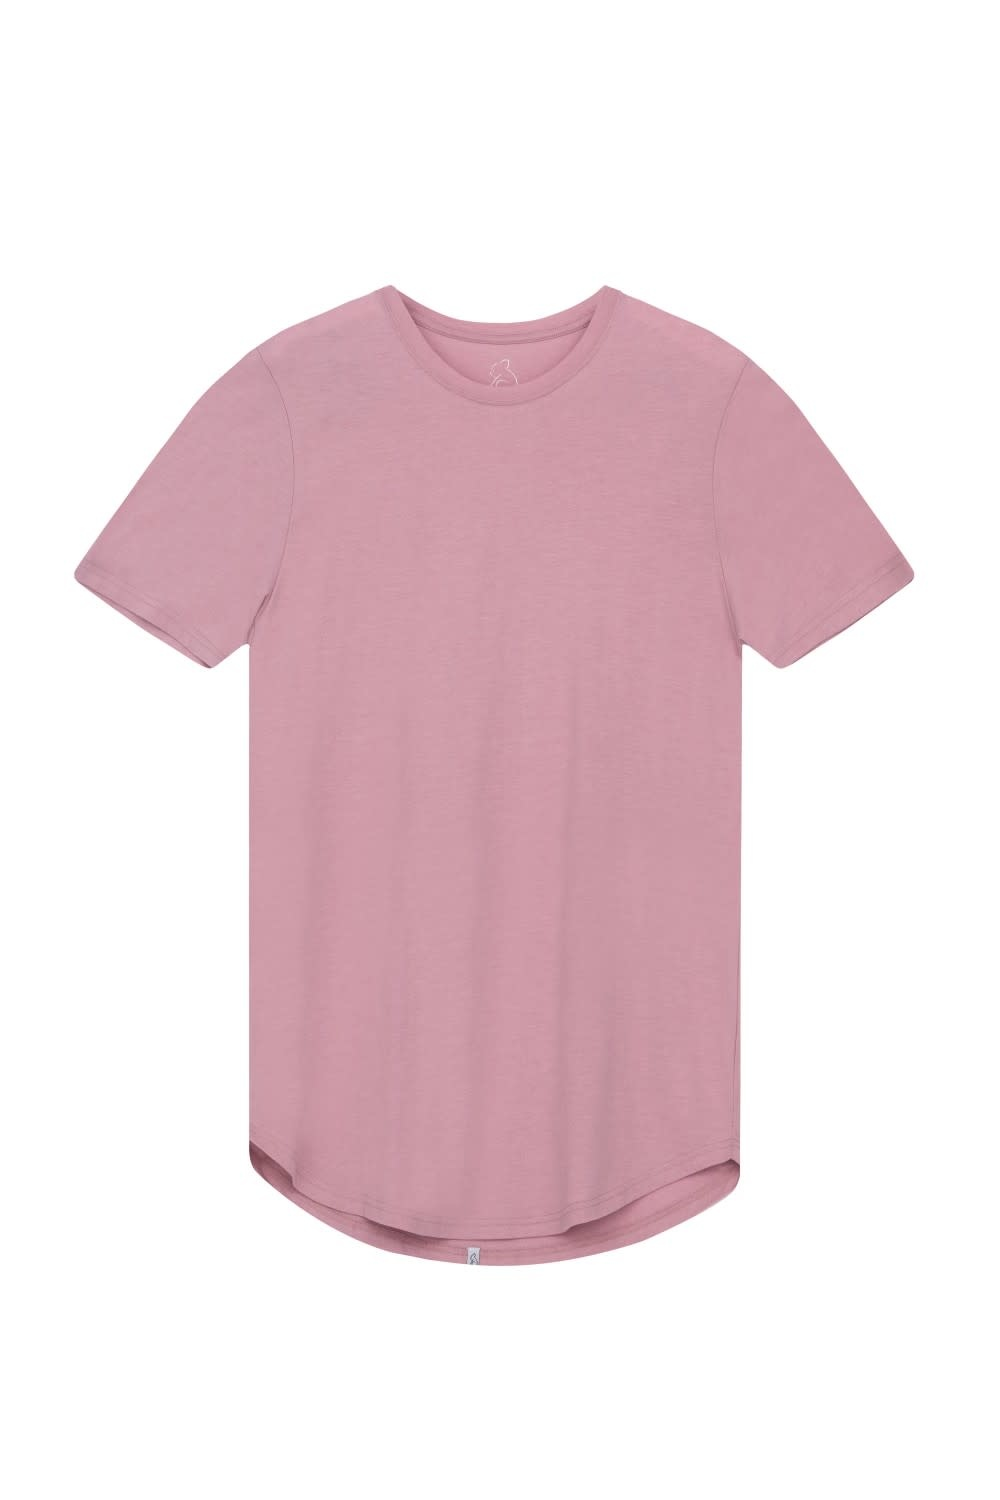 Eazy Scoop Tee Dusty Pink